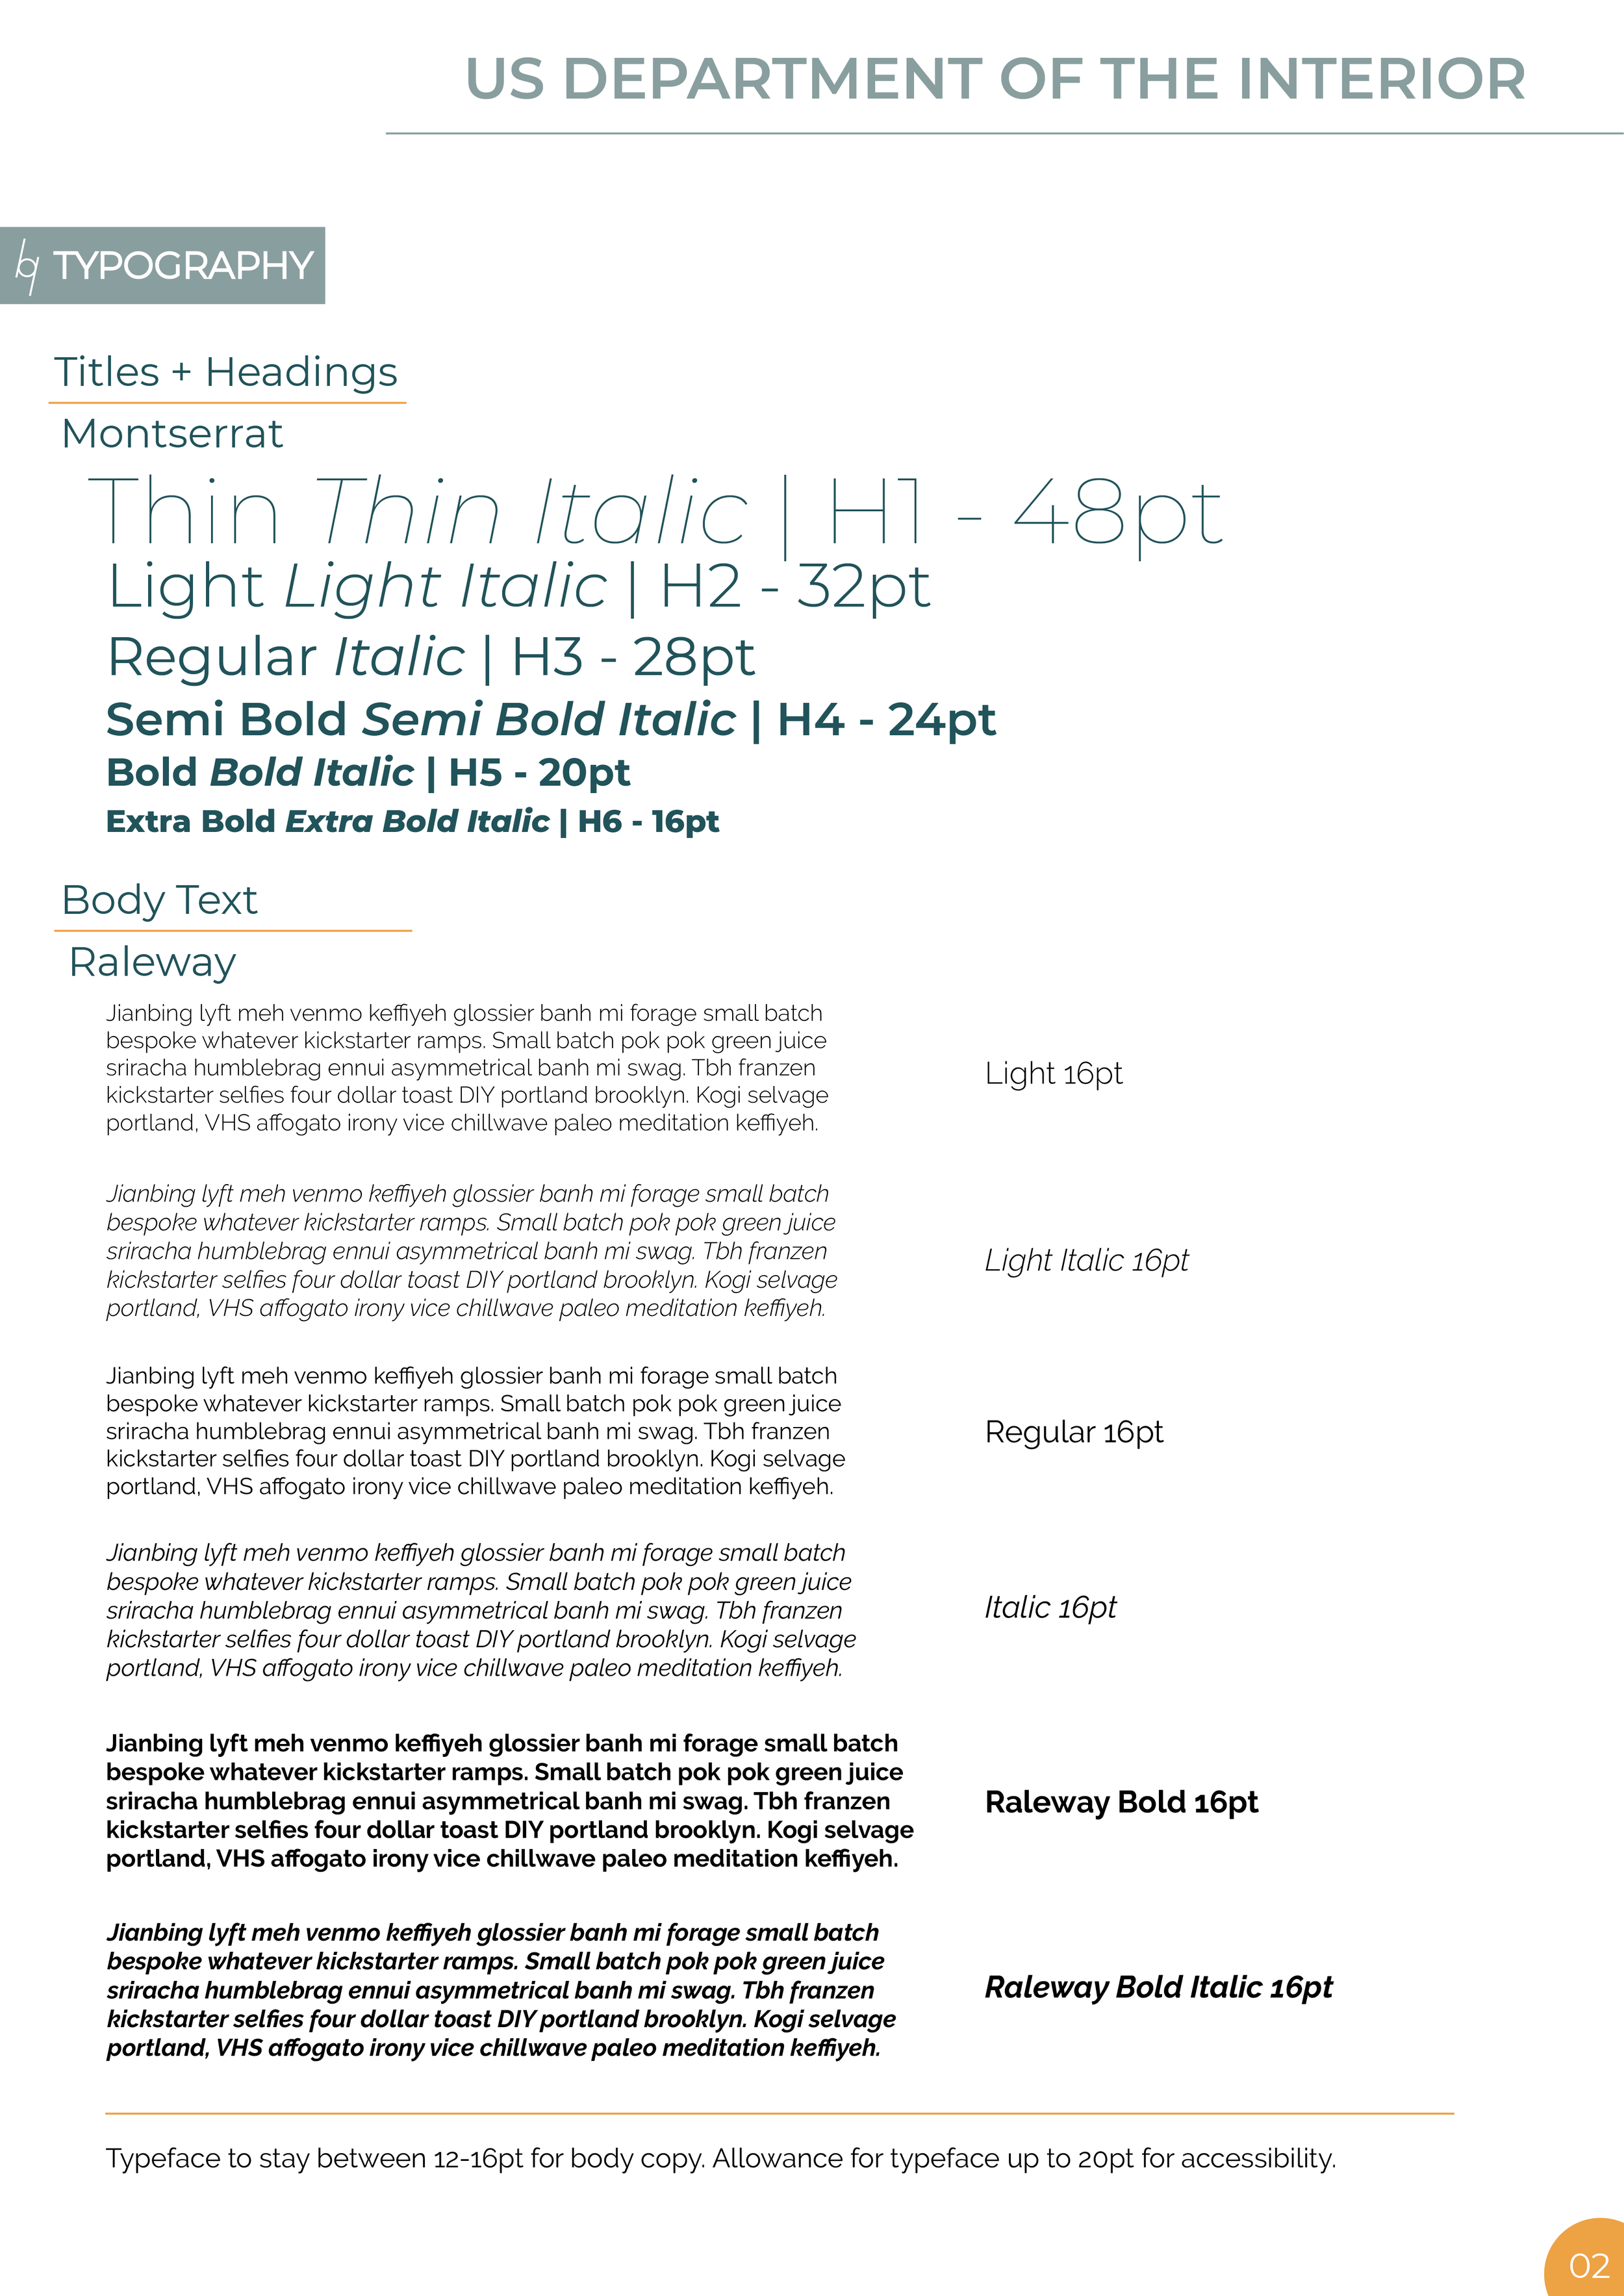 HEEBNER-DOI-Style-Guide_Artboard Page 2.png